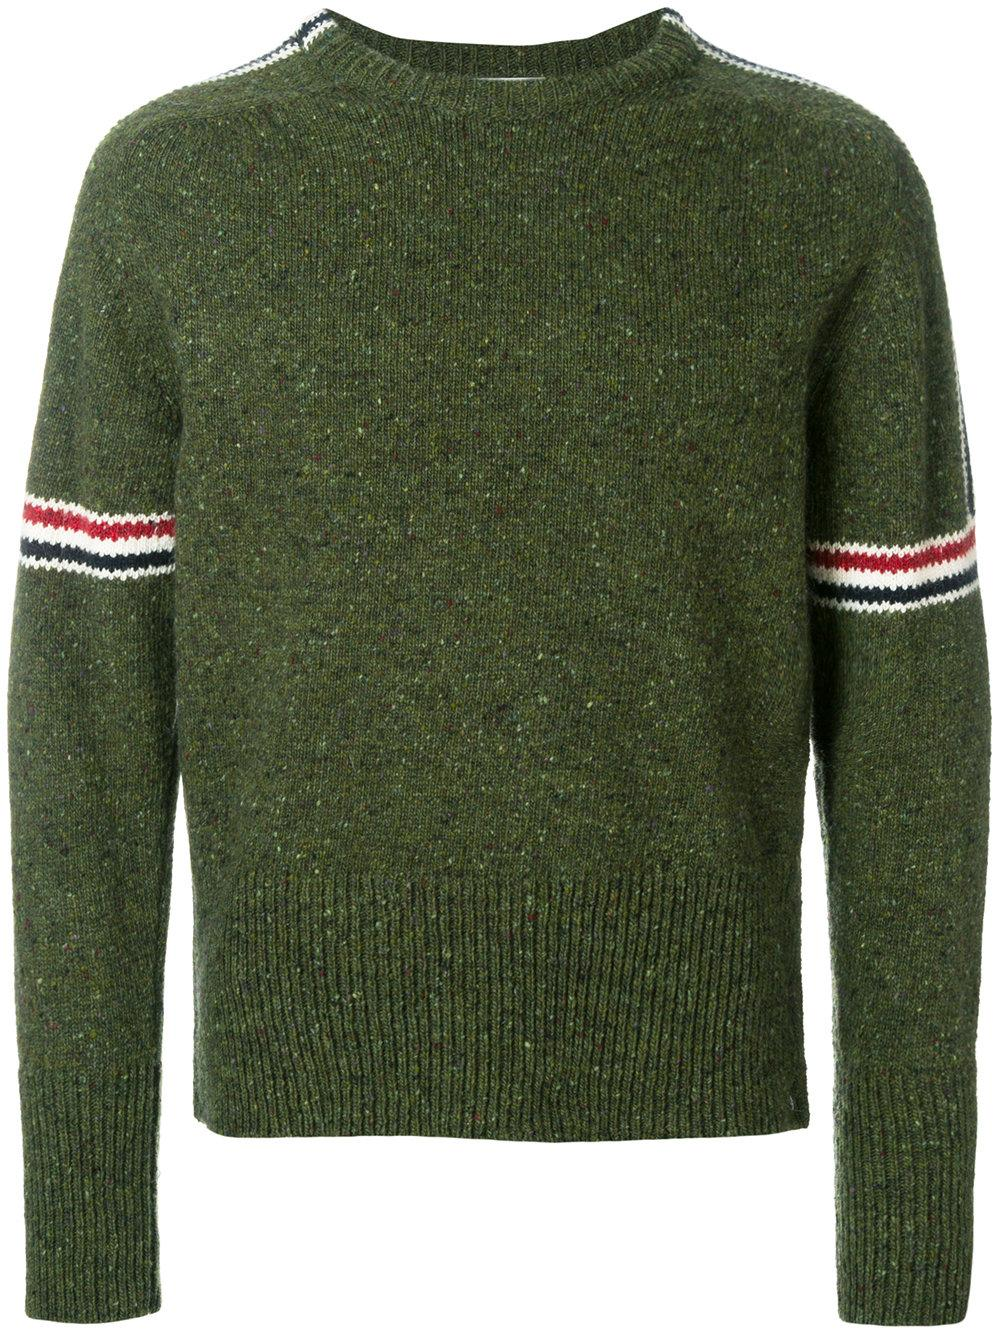 Thom Browne Donegal-Effect Wool-Mohair Sweater - Olive In Green